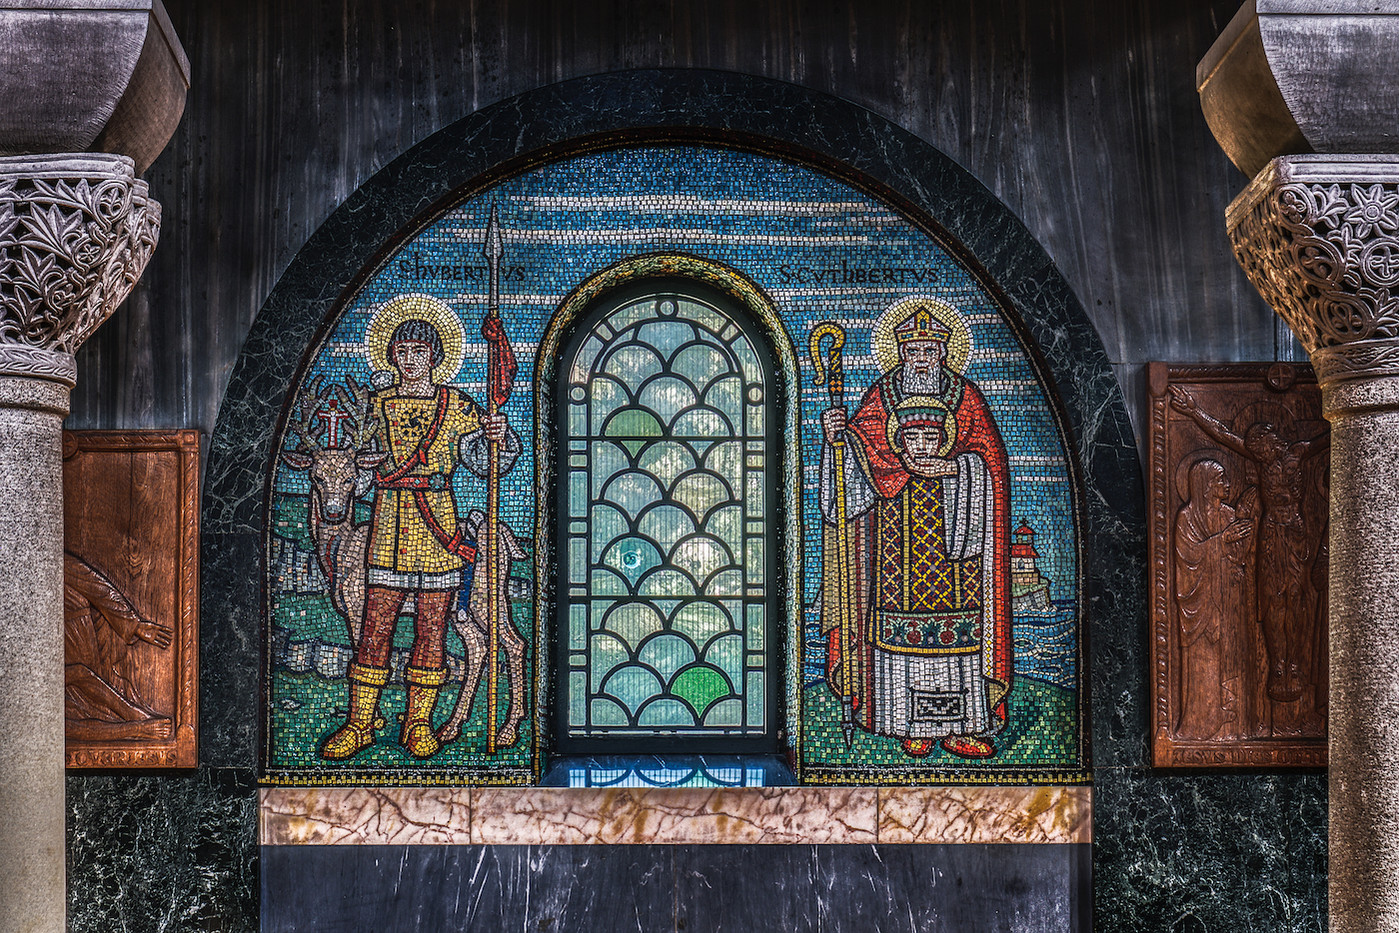 16 MOSAIC OF ST CUTHBERT WITH THE HEAD OF ST OSWALD AT CHURCH IN DROITWICH SPA by John Lewis